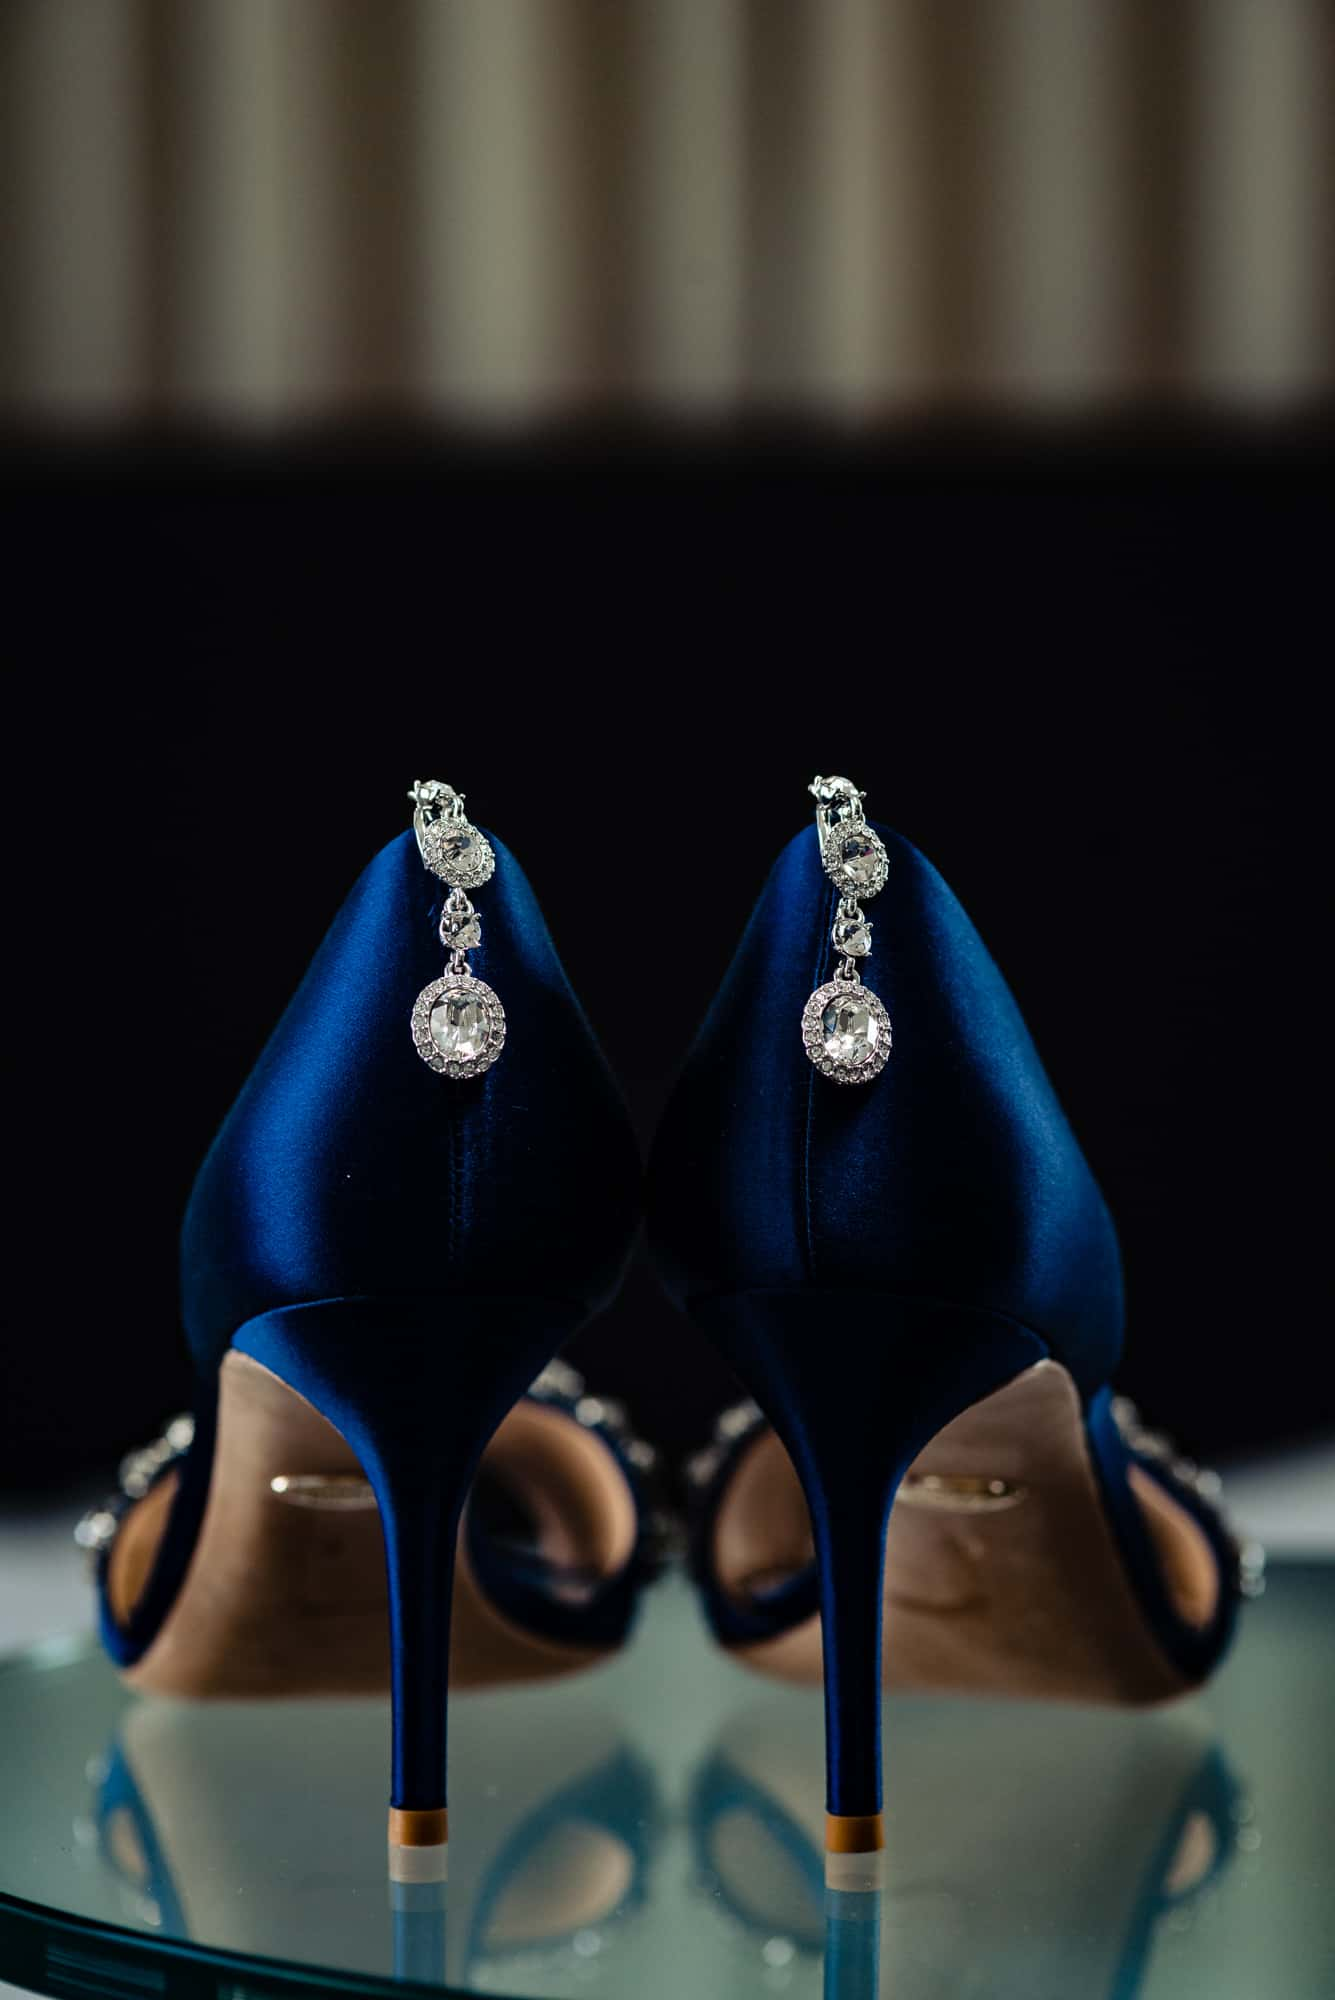 wedding accessories, blue high heeled wedding shoes with earrings attached